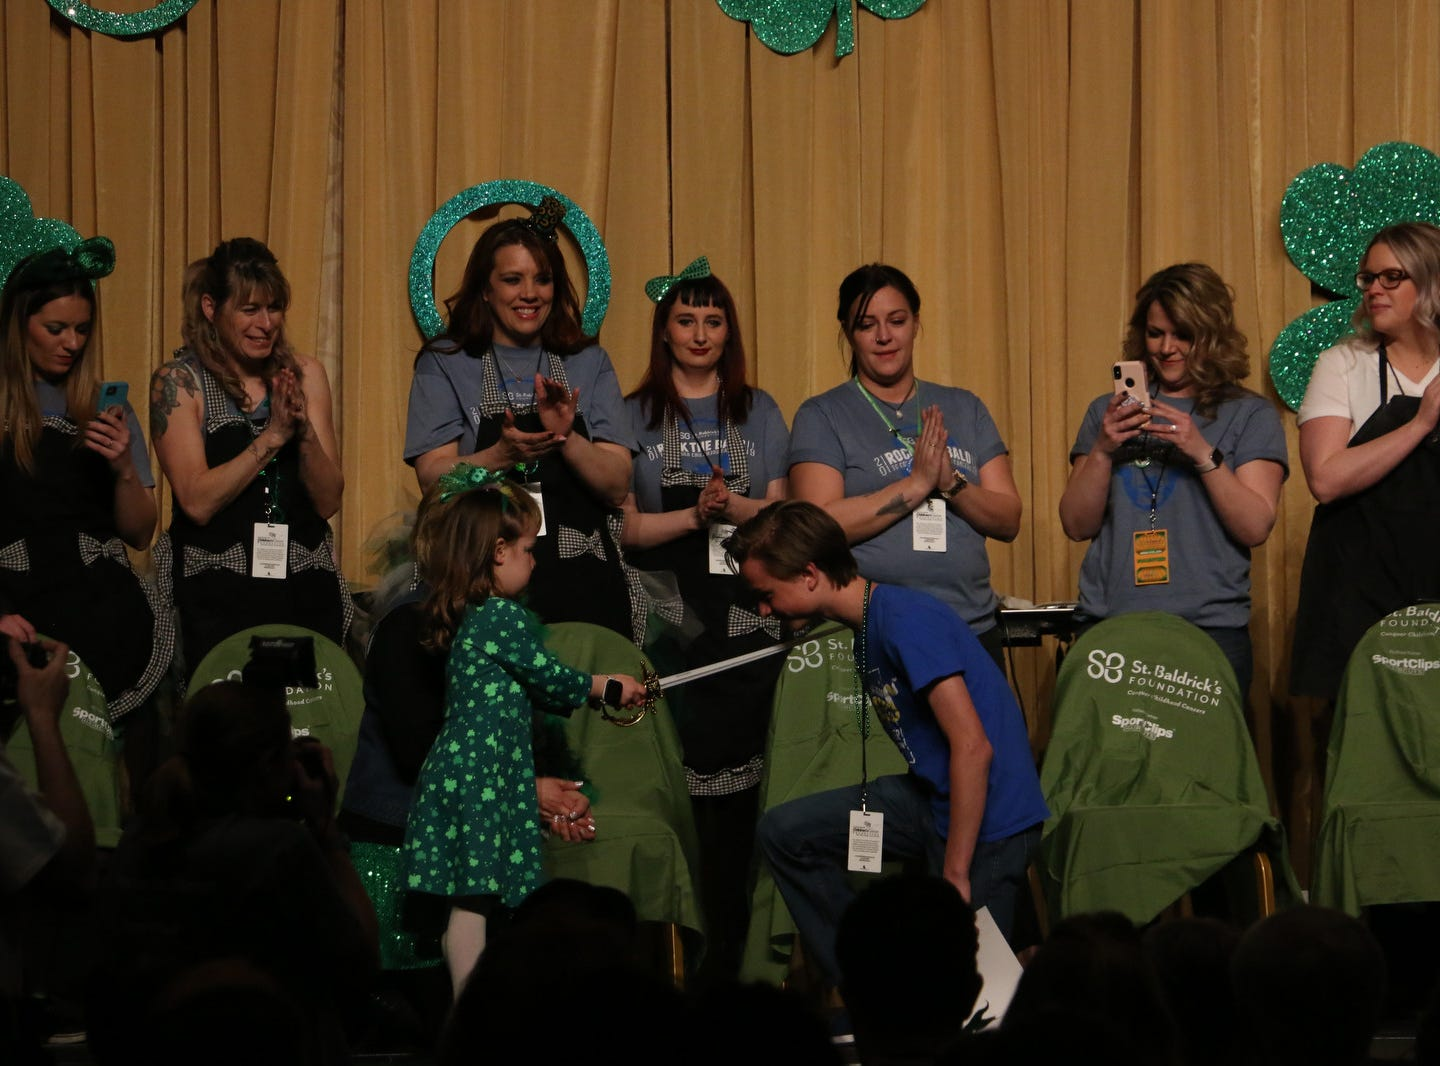 The Northern Nevada Children Cancer Foundation and the St. Baldrick's Foundation's fundraising head-shaving event at the Downtown Reno Ballroom on March 15, 2019.